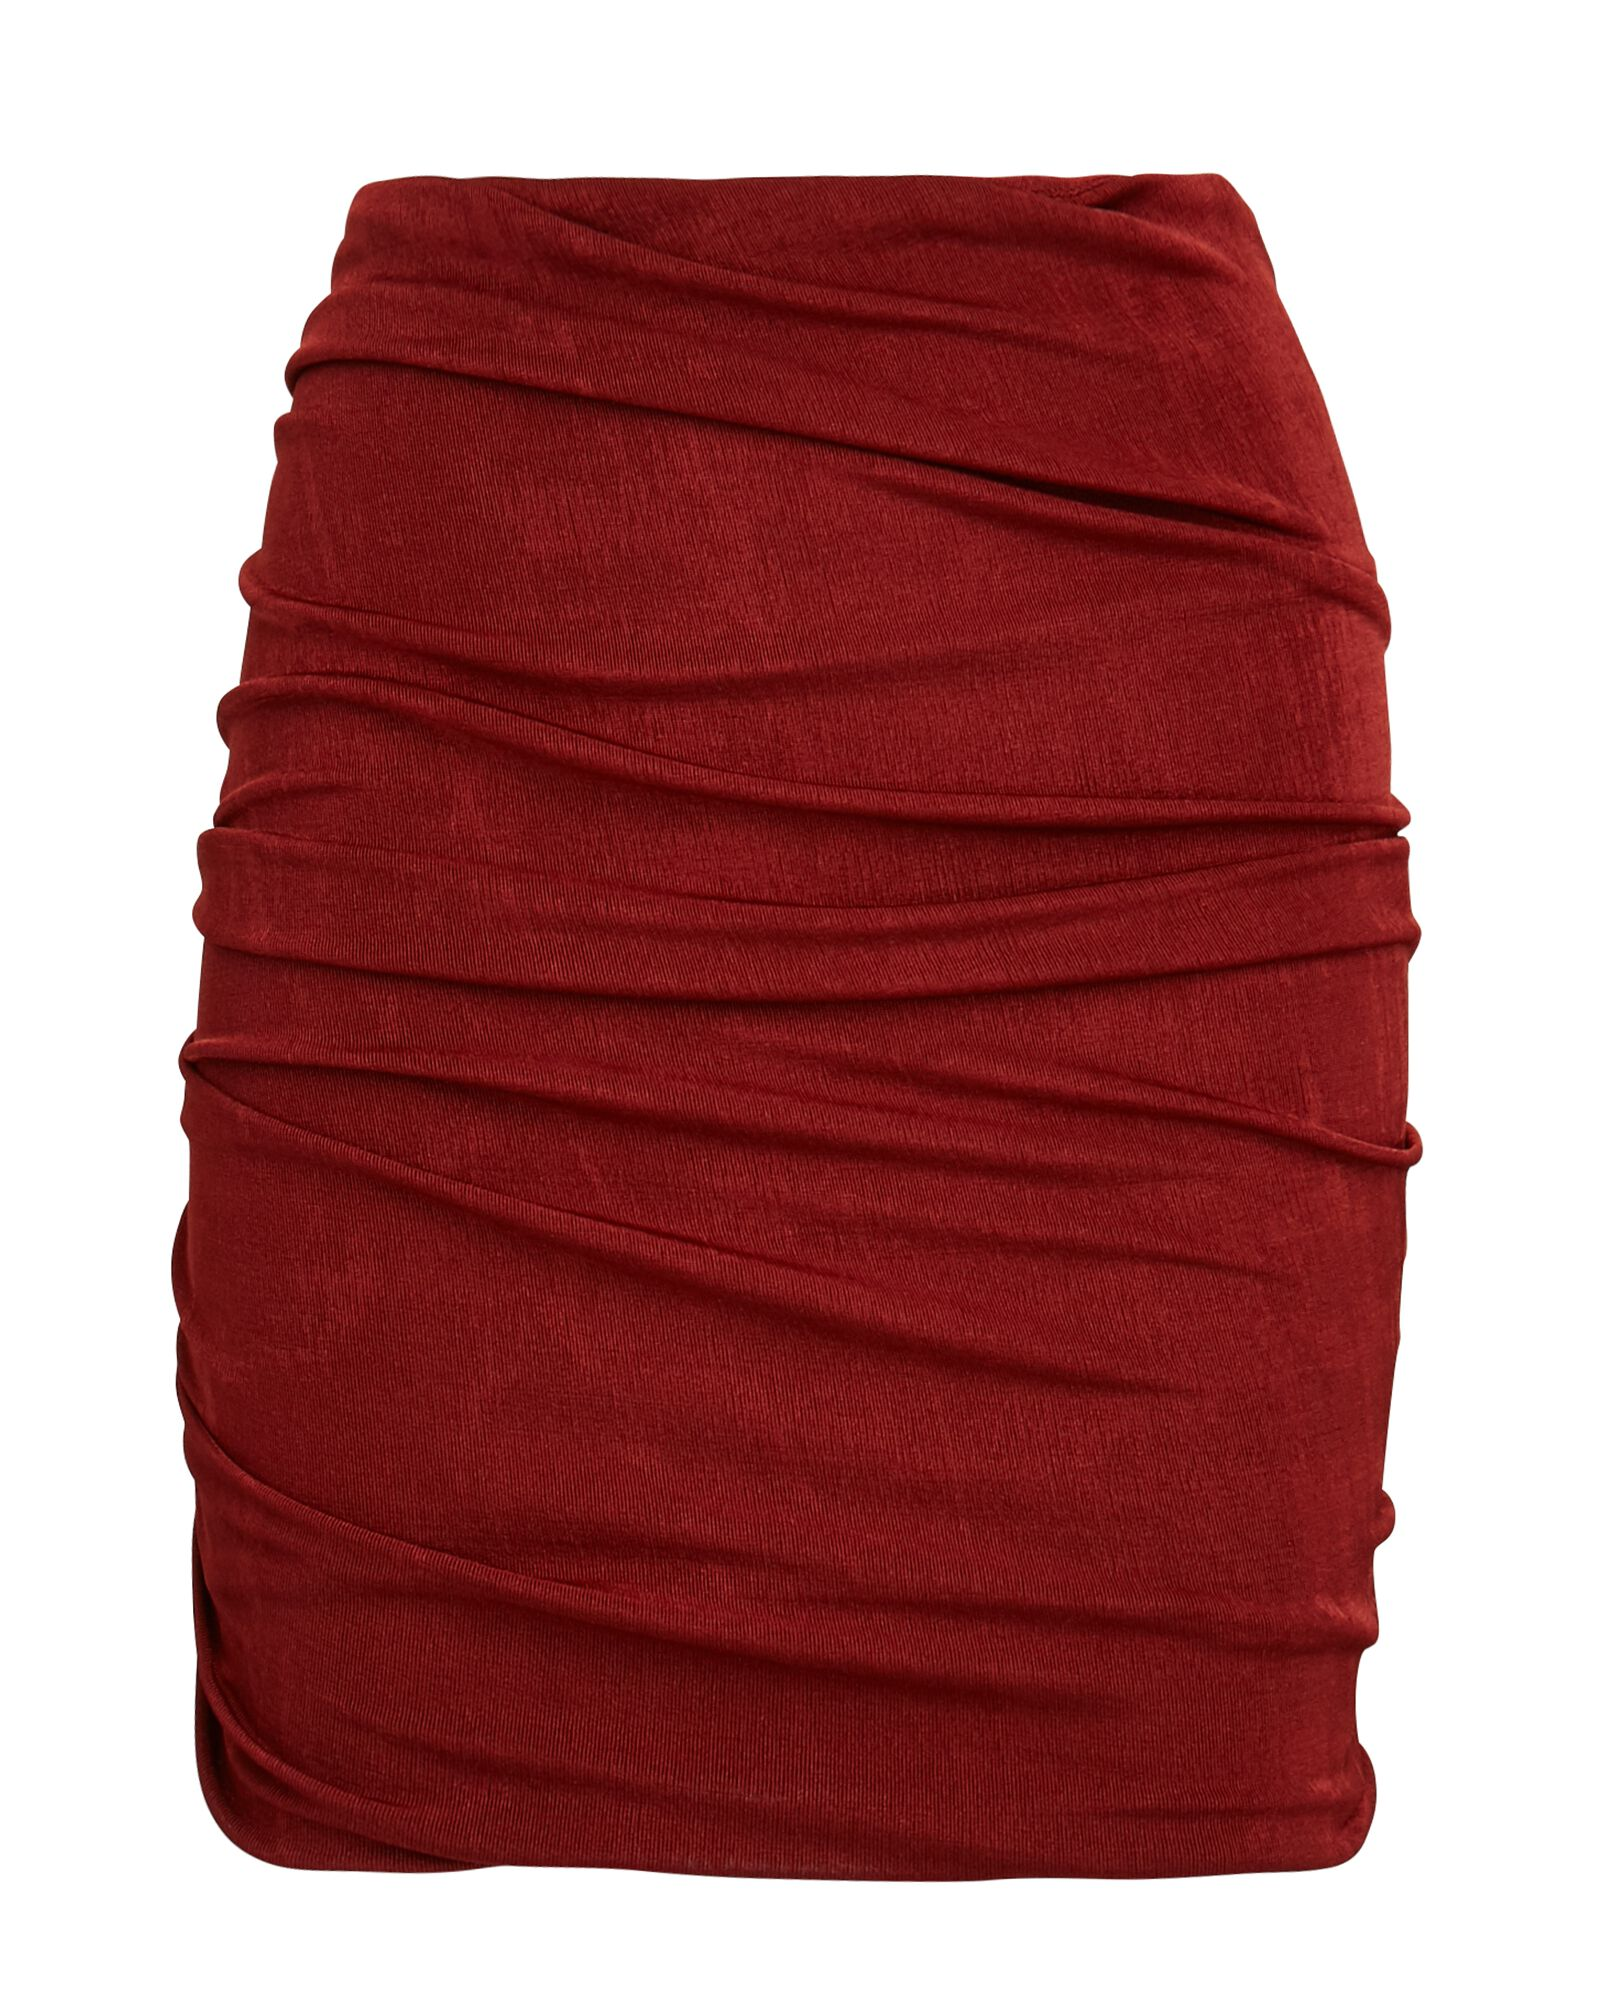 Cyrus Ruched Mini Skirt, RED-DRK, hi-res